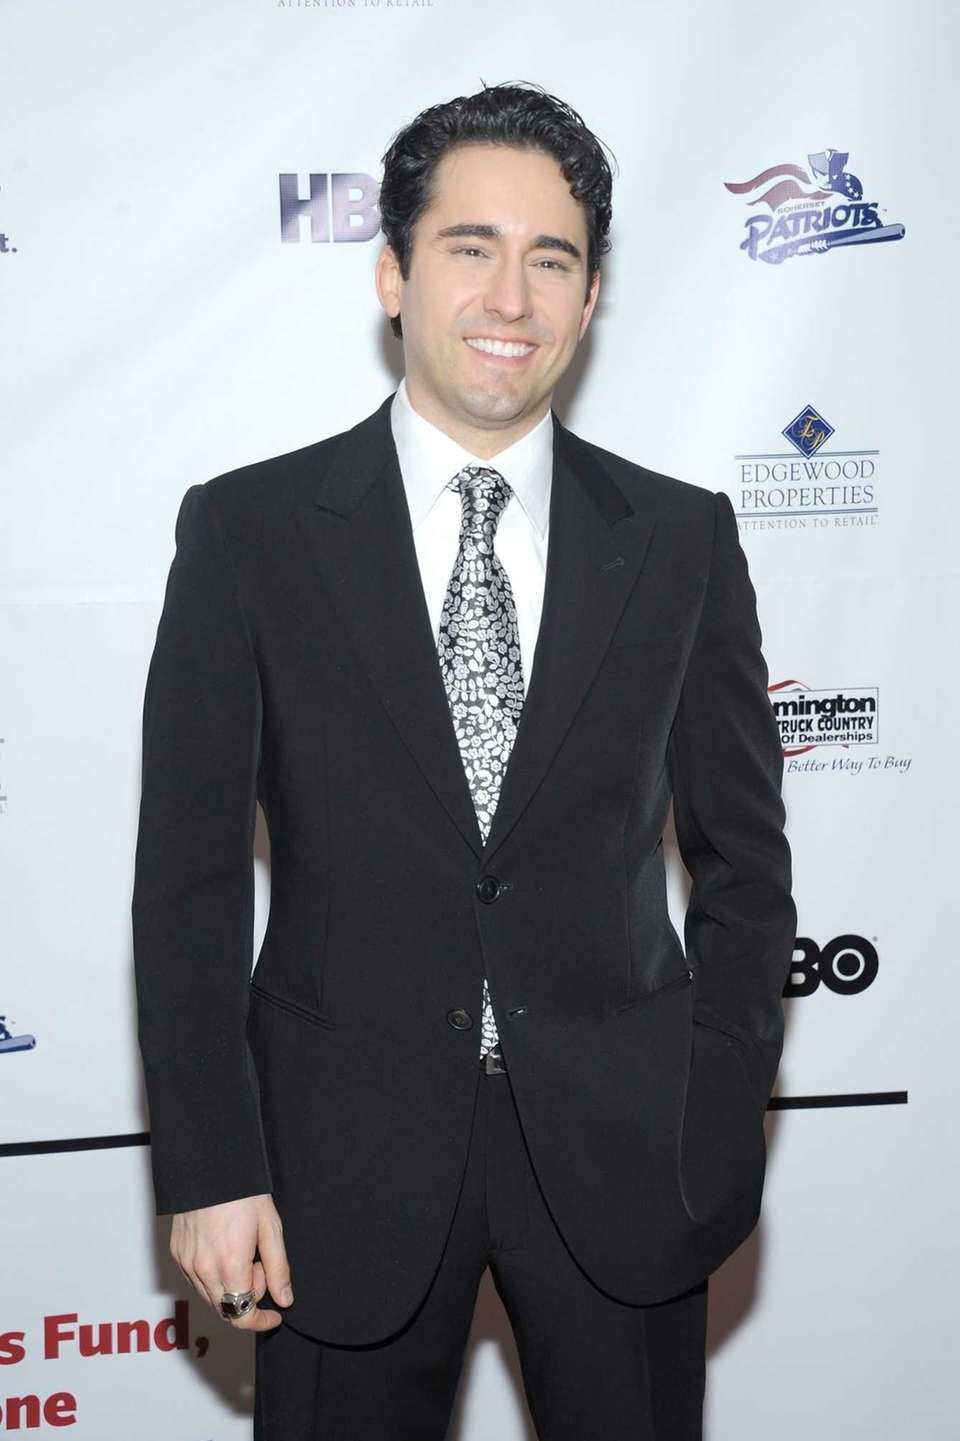 John Lloyd Young plays Frankie Valli in